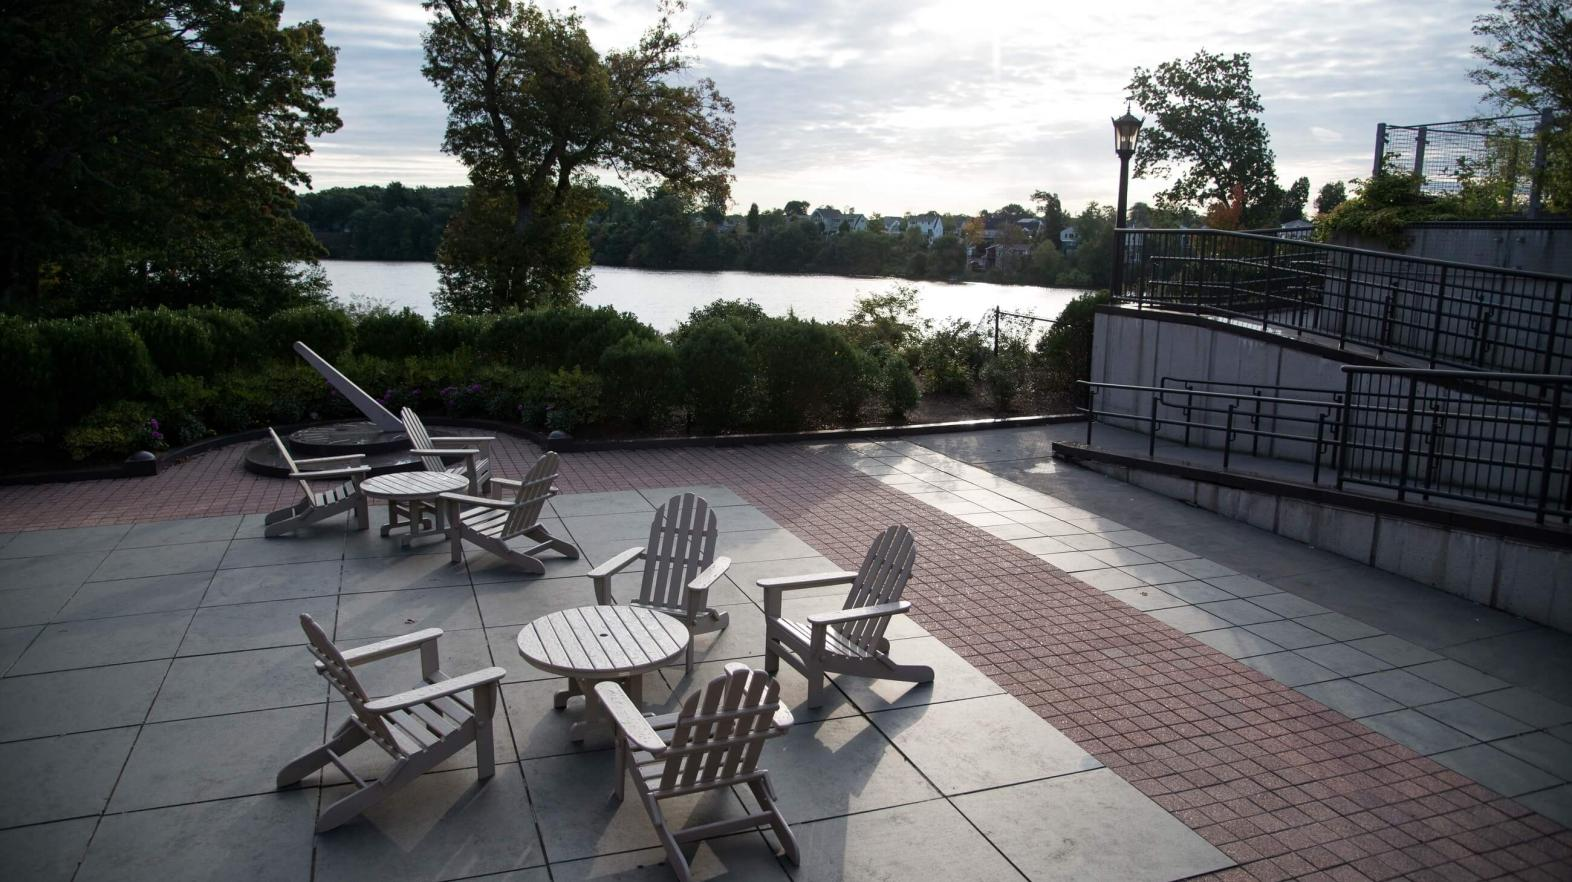 A view with chairs and tables overlooking Lake Massasoit.